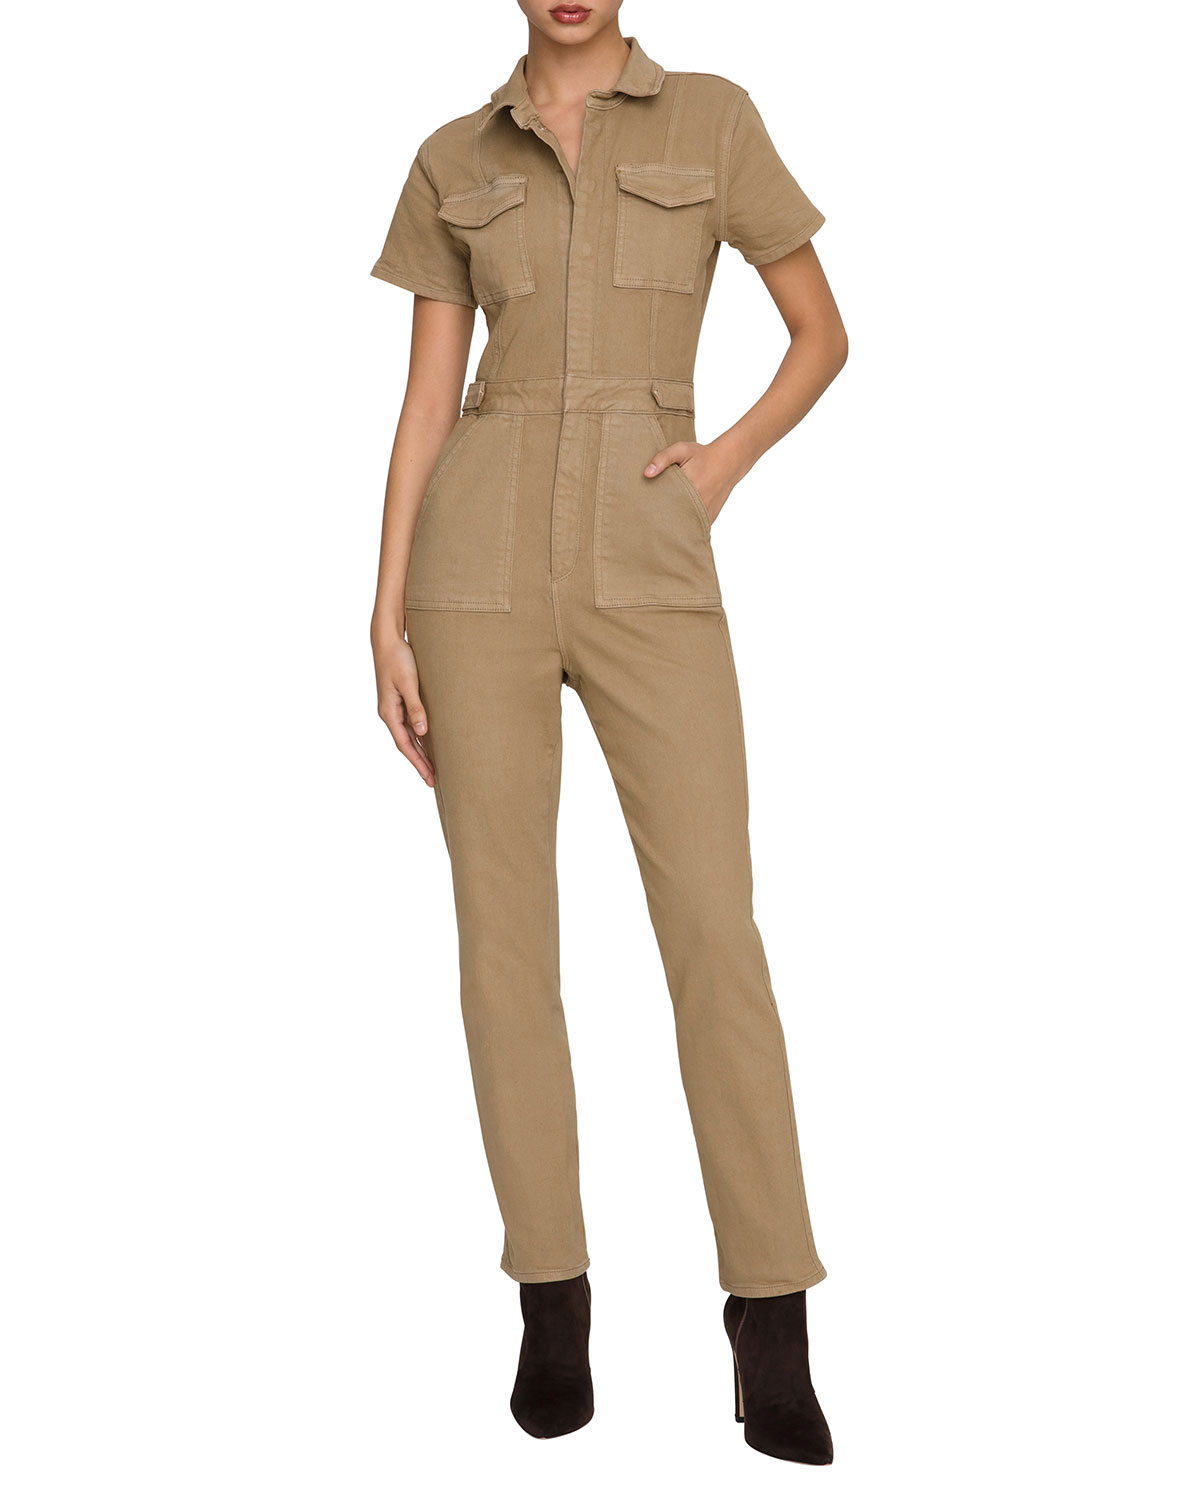 Good American Jumpsuits FIT FOR SUCCESS JUMPSUIT - INCLUSIVE SIZING